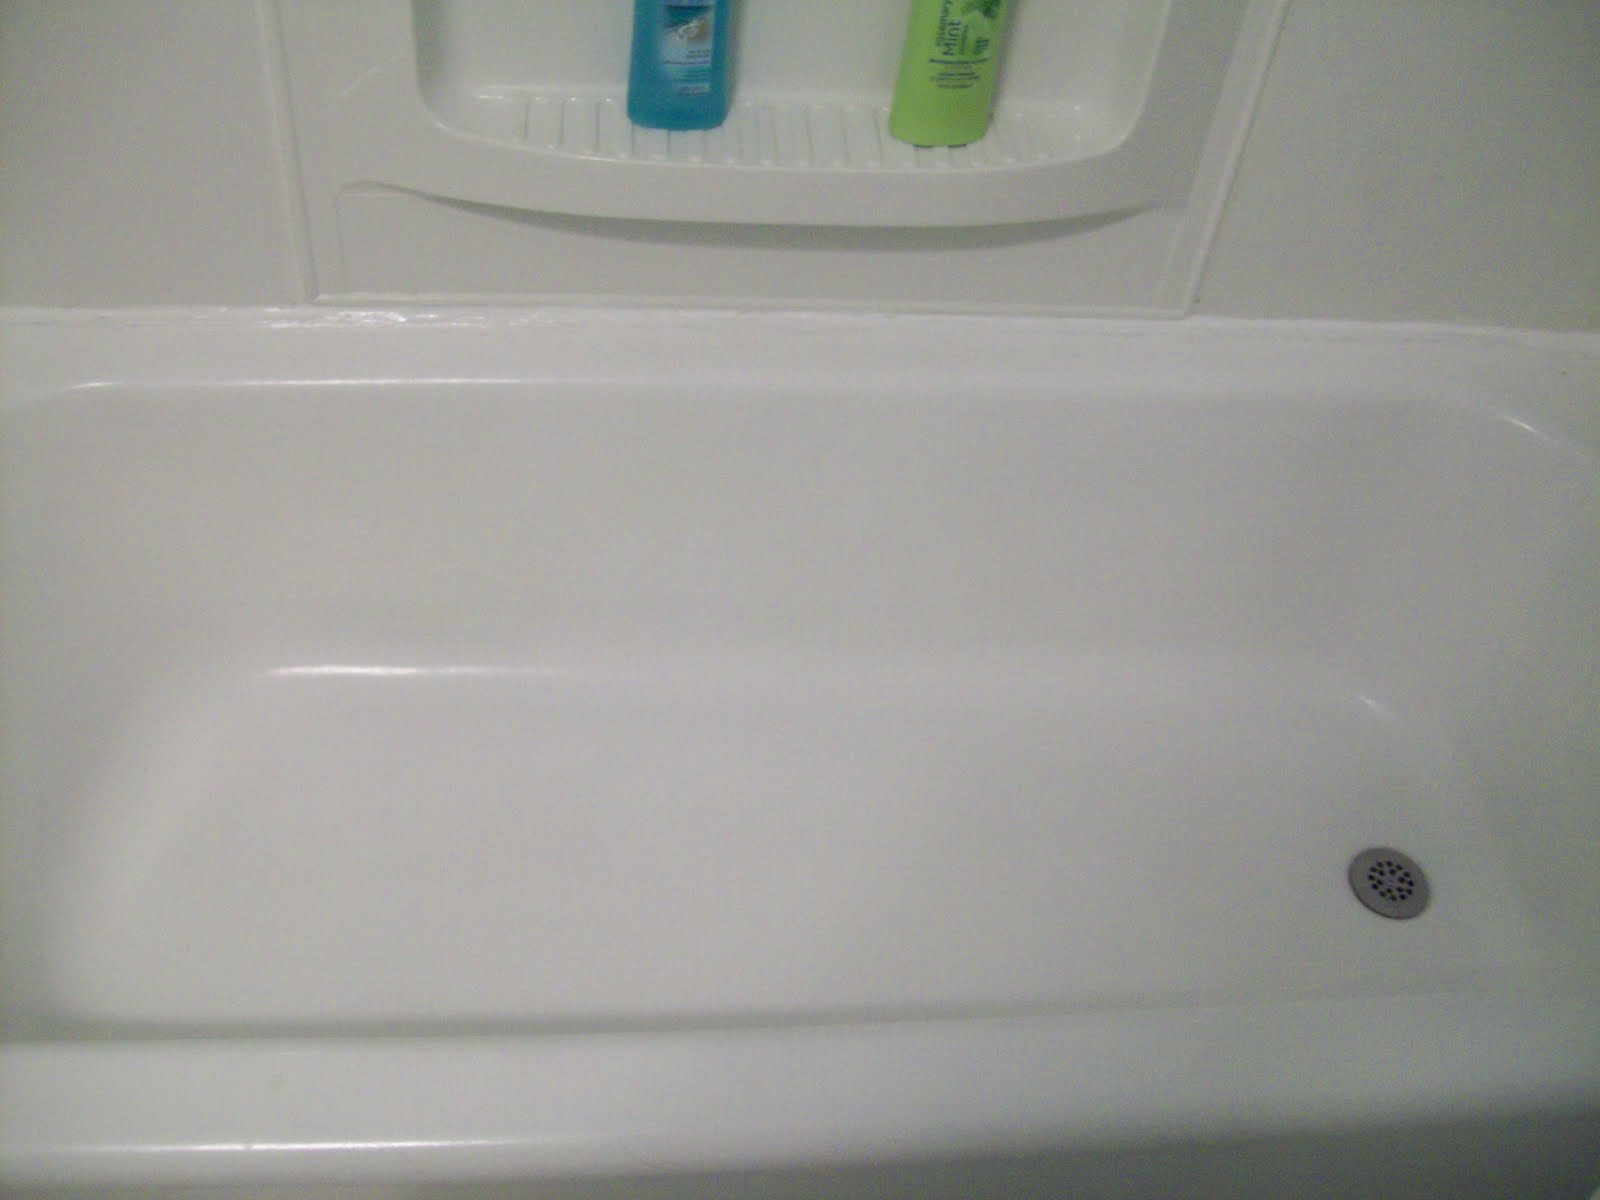 Pecan Corner: Refinishing the Bath Tub